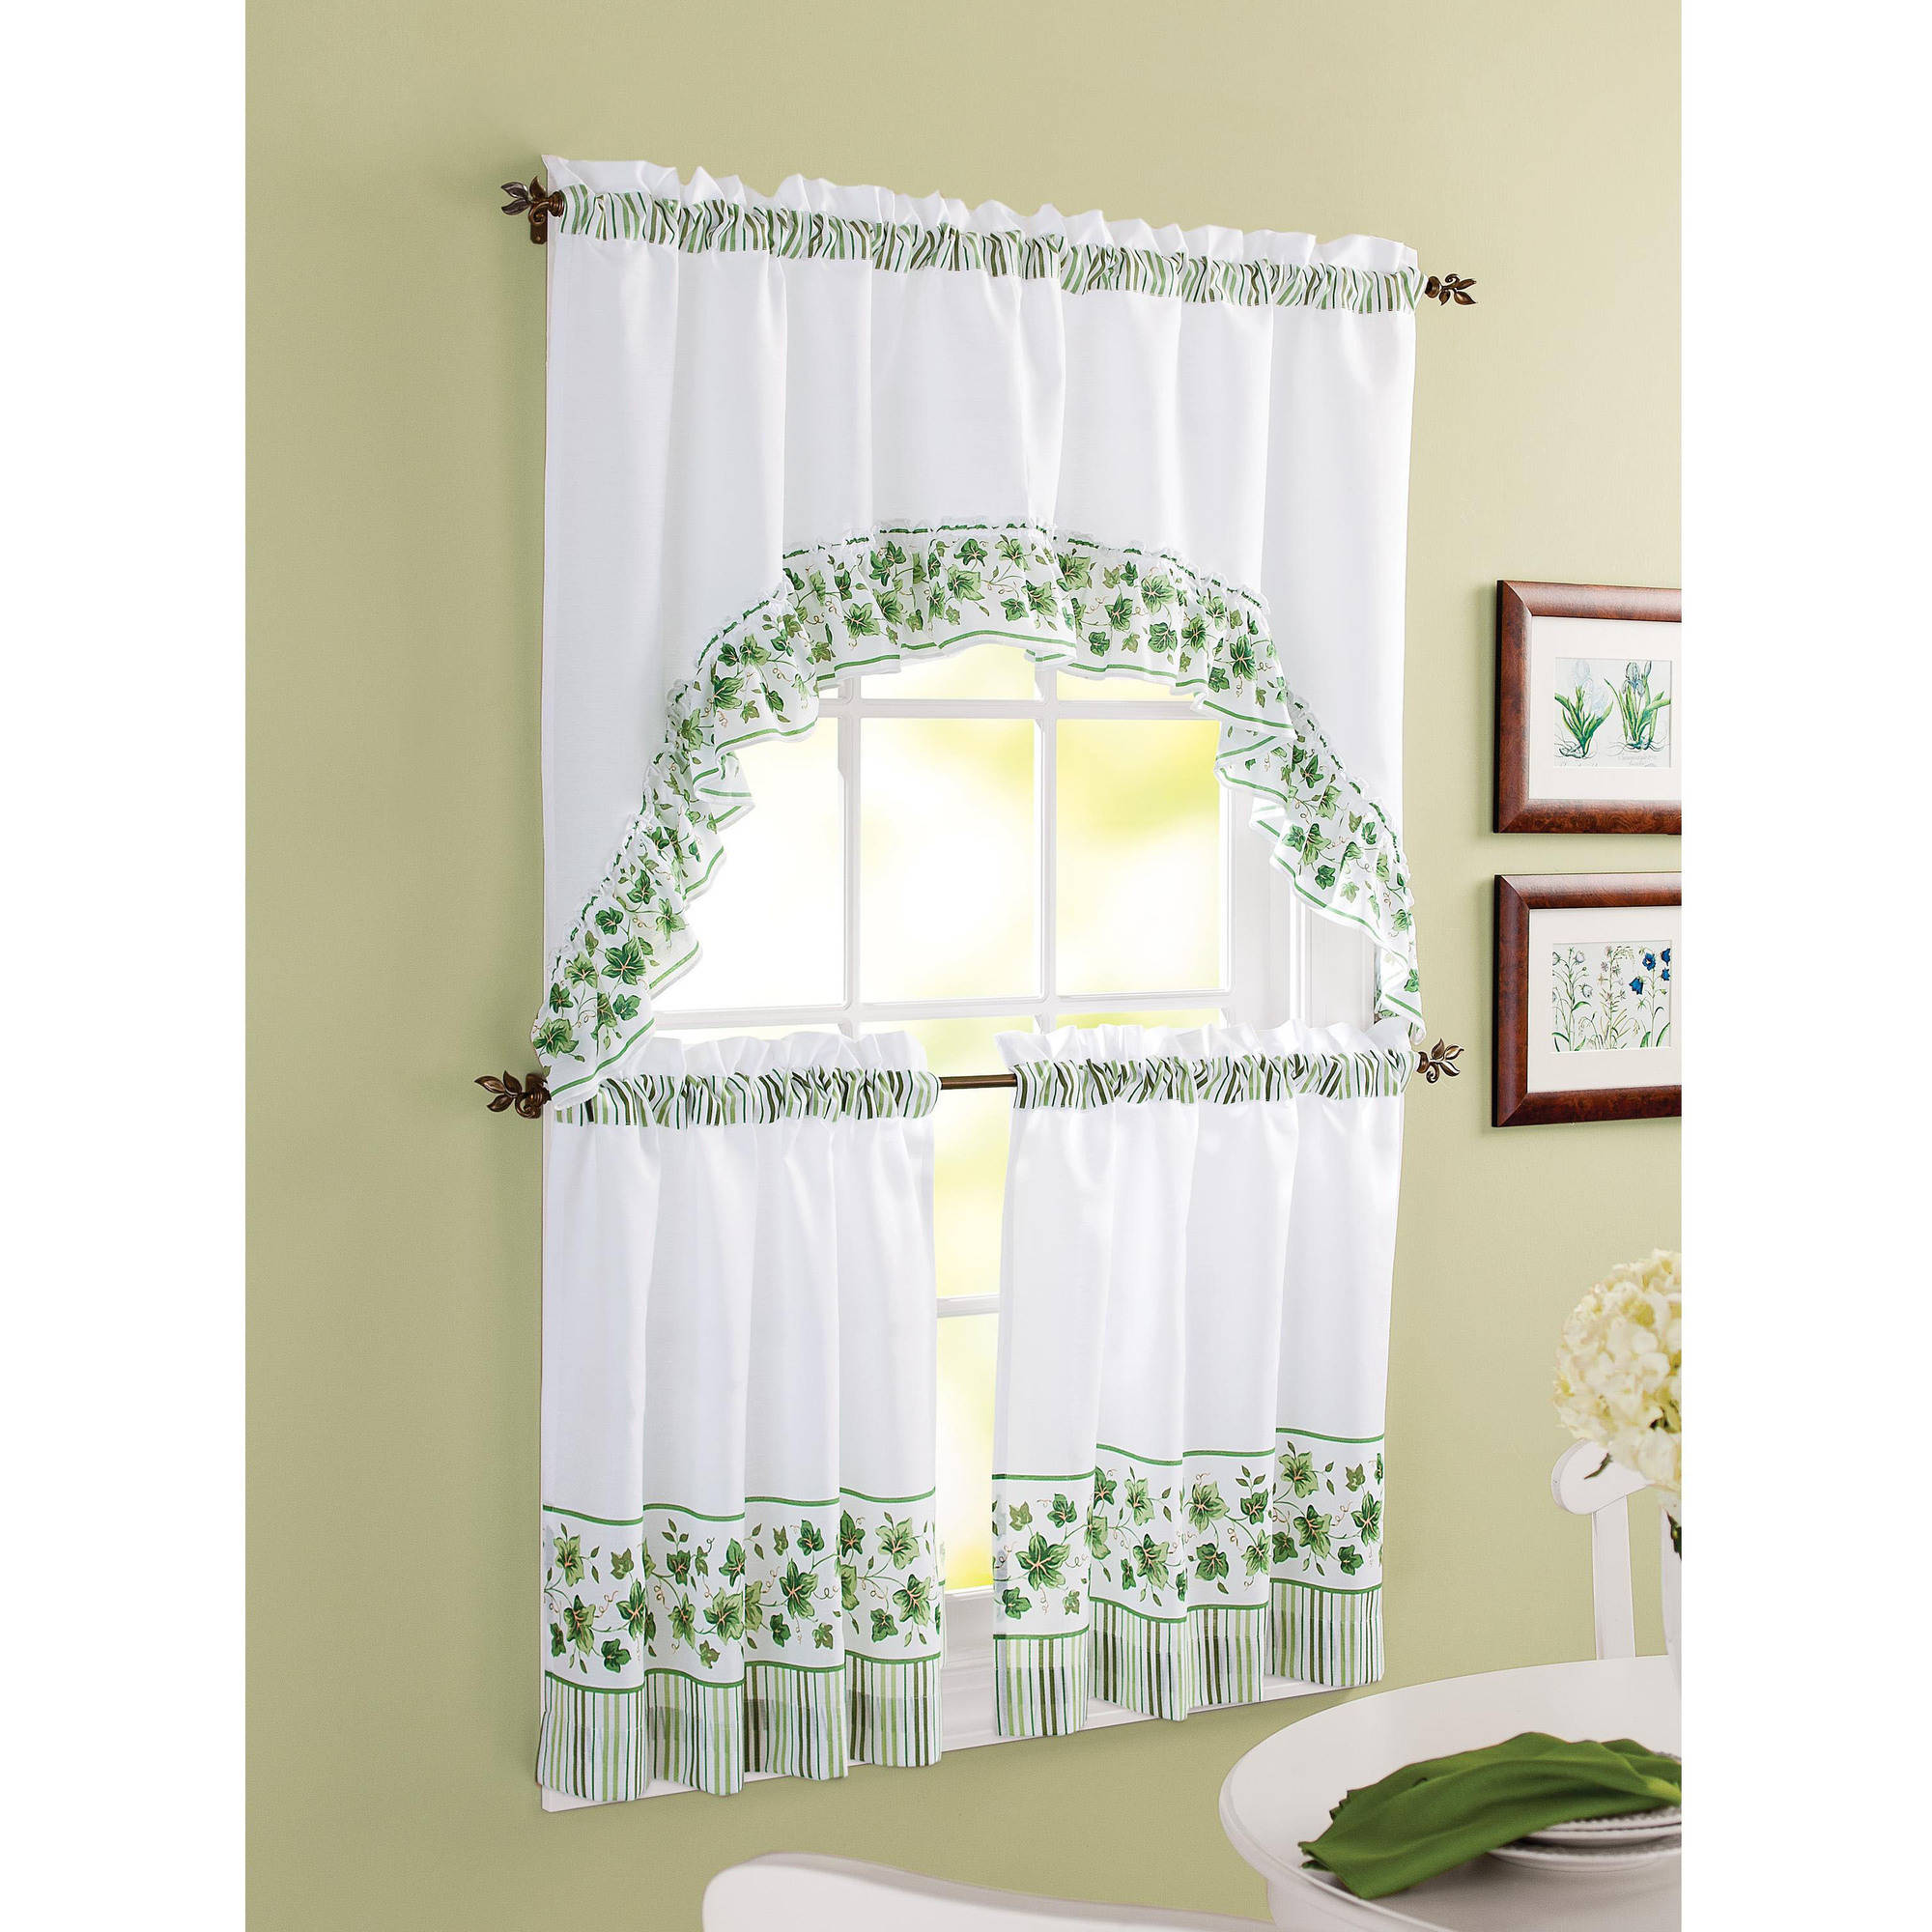 Chf you morning rooster tier curtain panel set for Kitchen window curtains